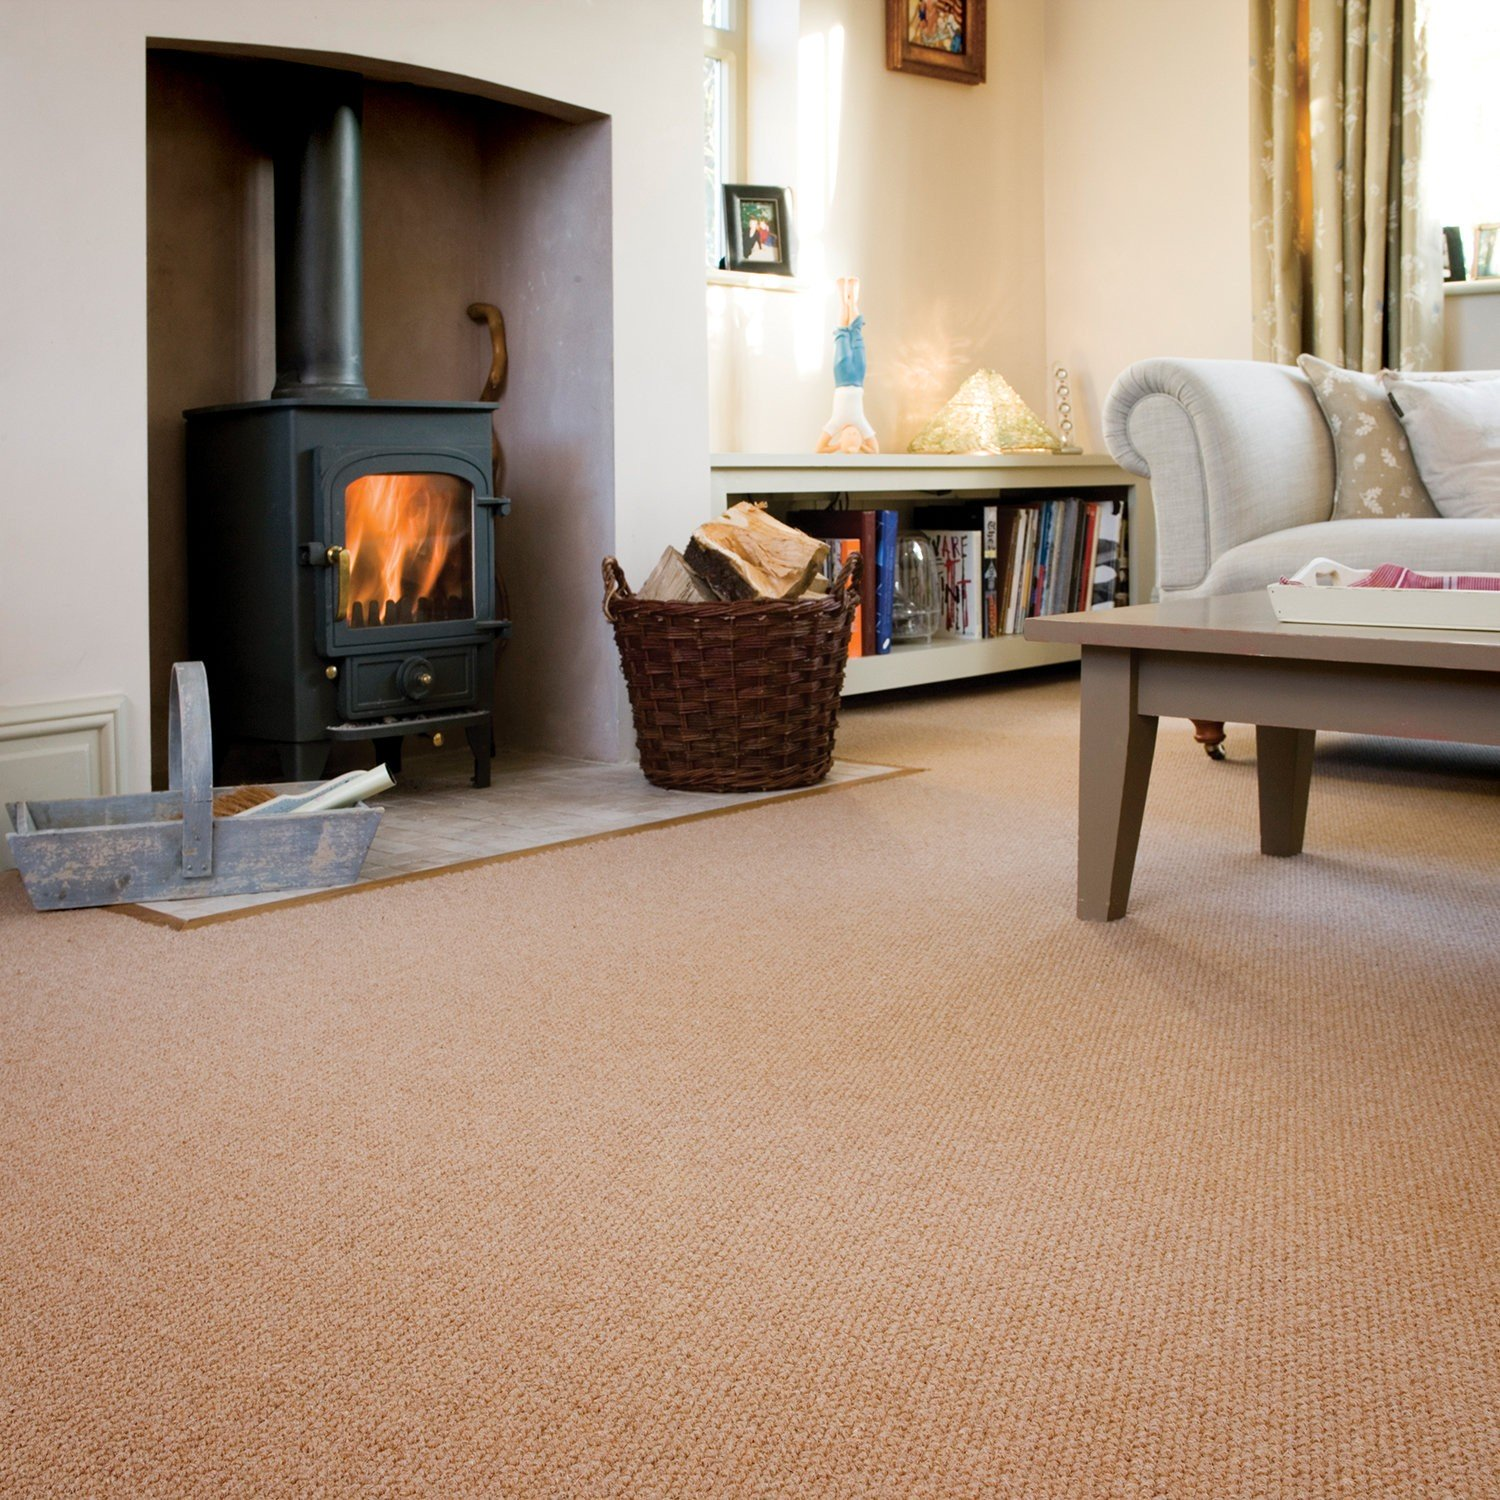 living room carpet livingroom:carpet living room beautiful on throughout modern creation home  ideas licious colour PKQXIZY